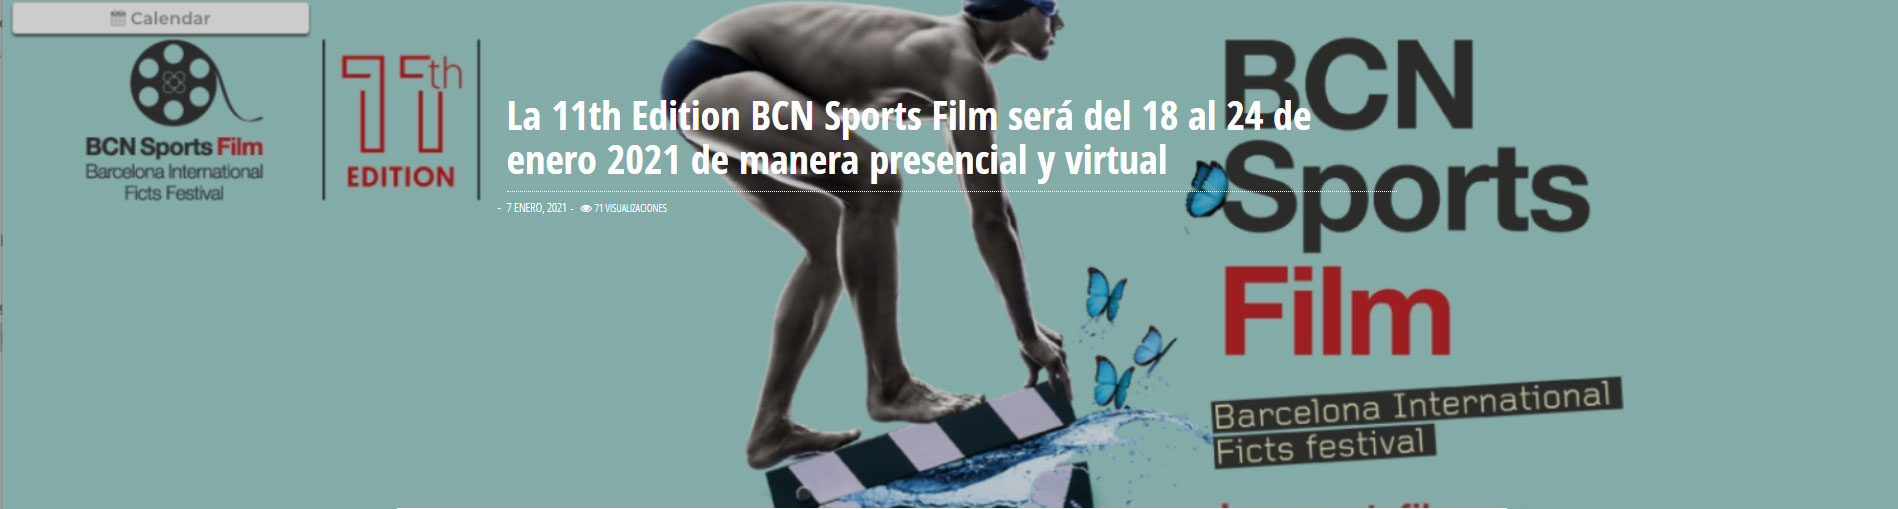 BCN SPORTS FILM - BARCELONA INTERNATIONAL FICTS FESTIVAL